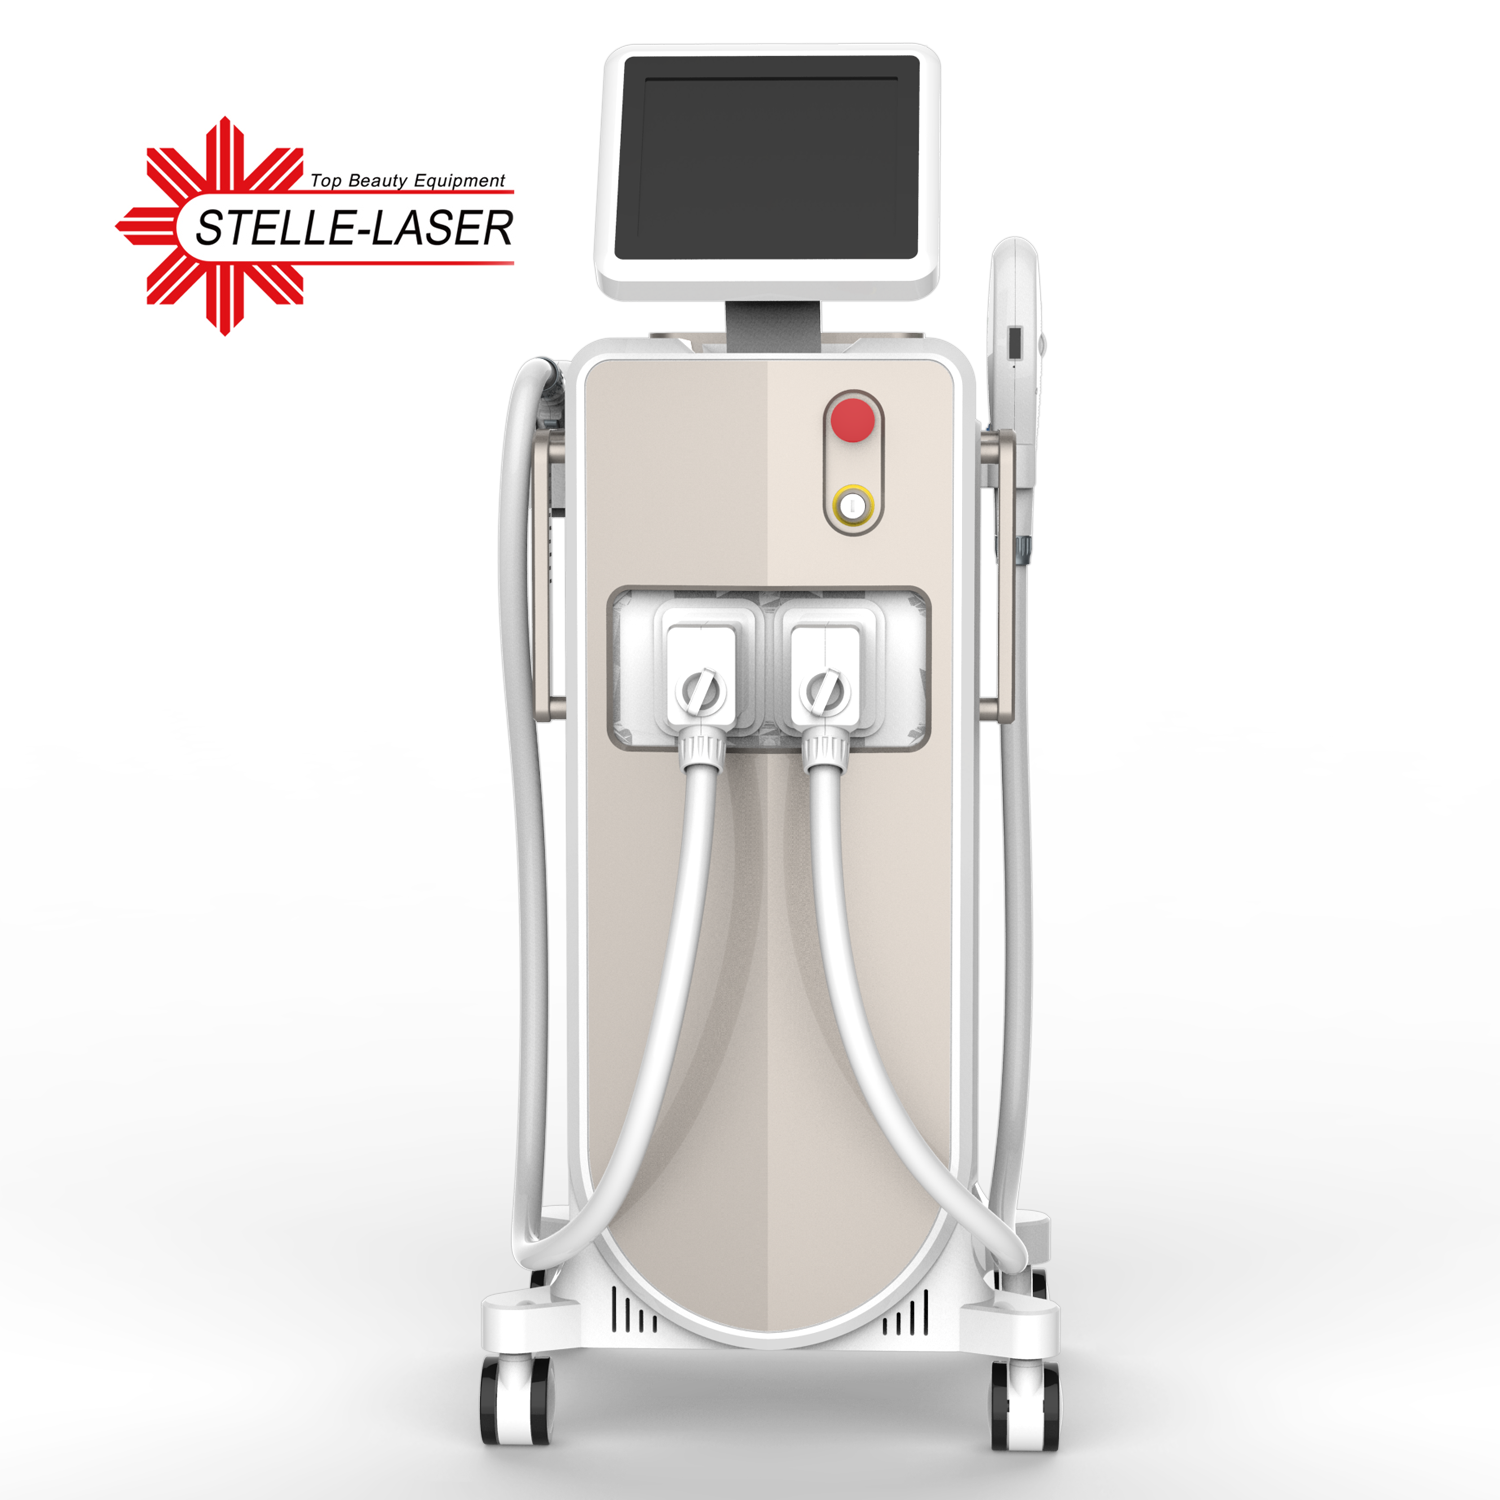 2 Handles OPT System IPL/SHR Diode Laser Painfree Hair Removal <strong>Device</strong>